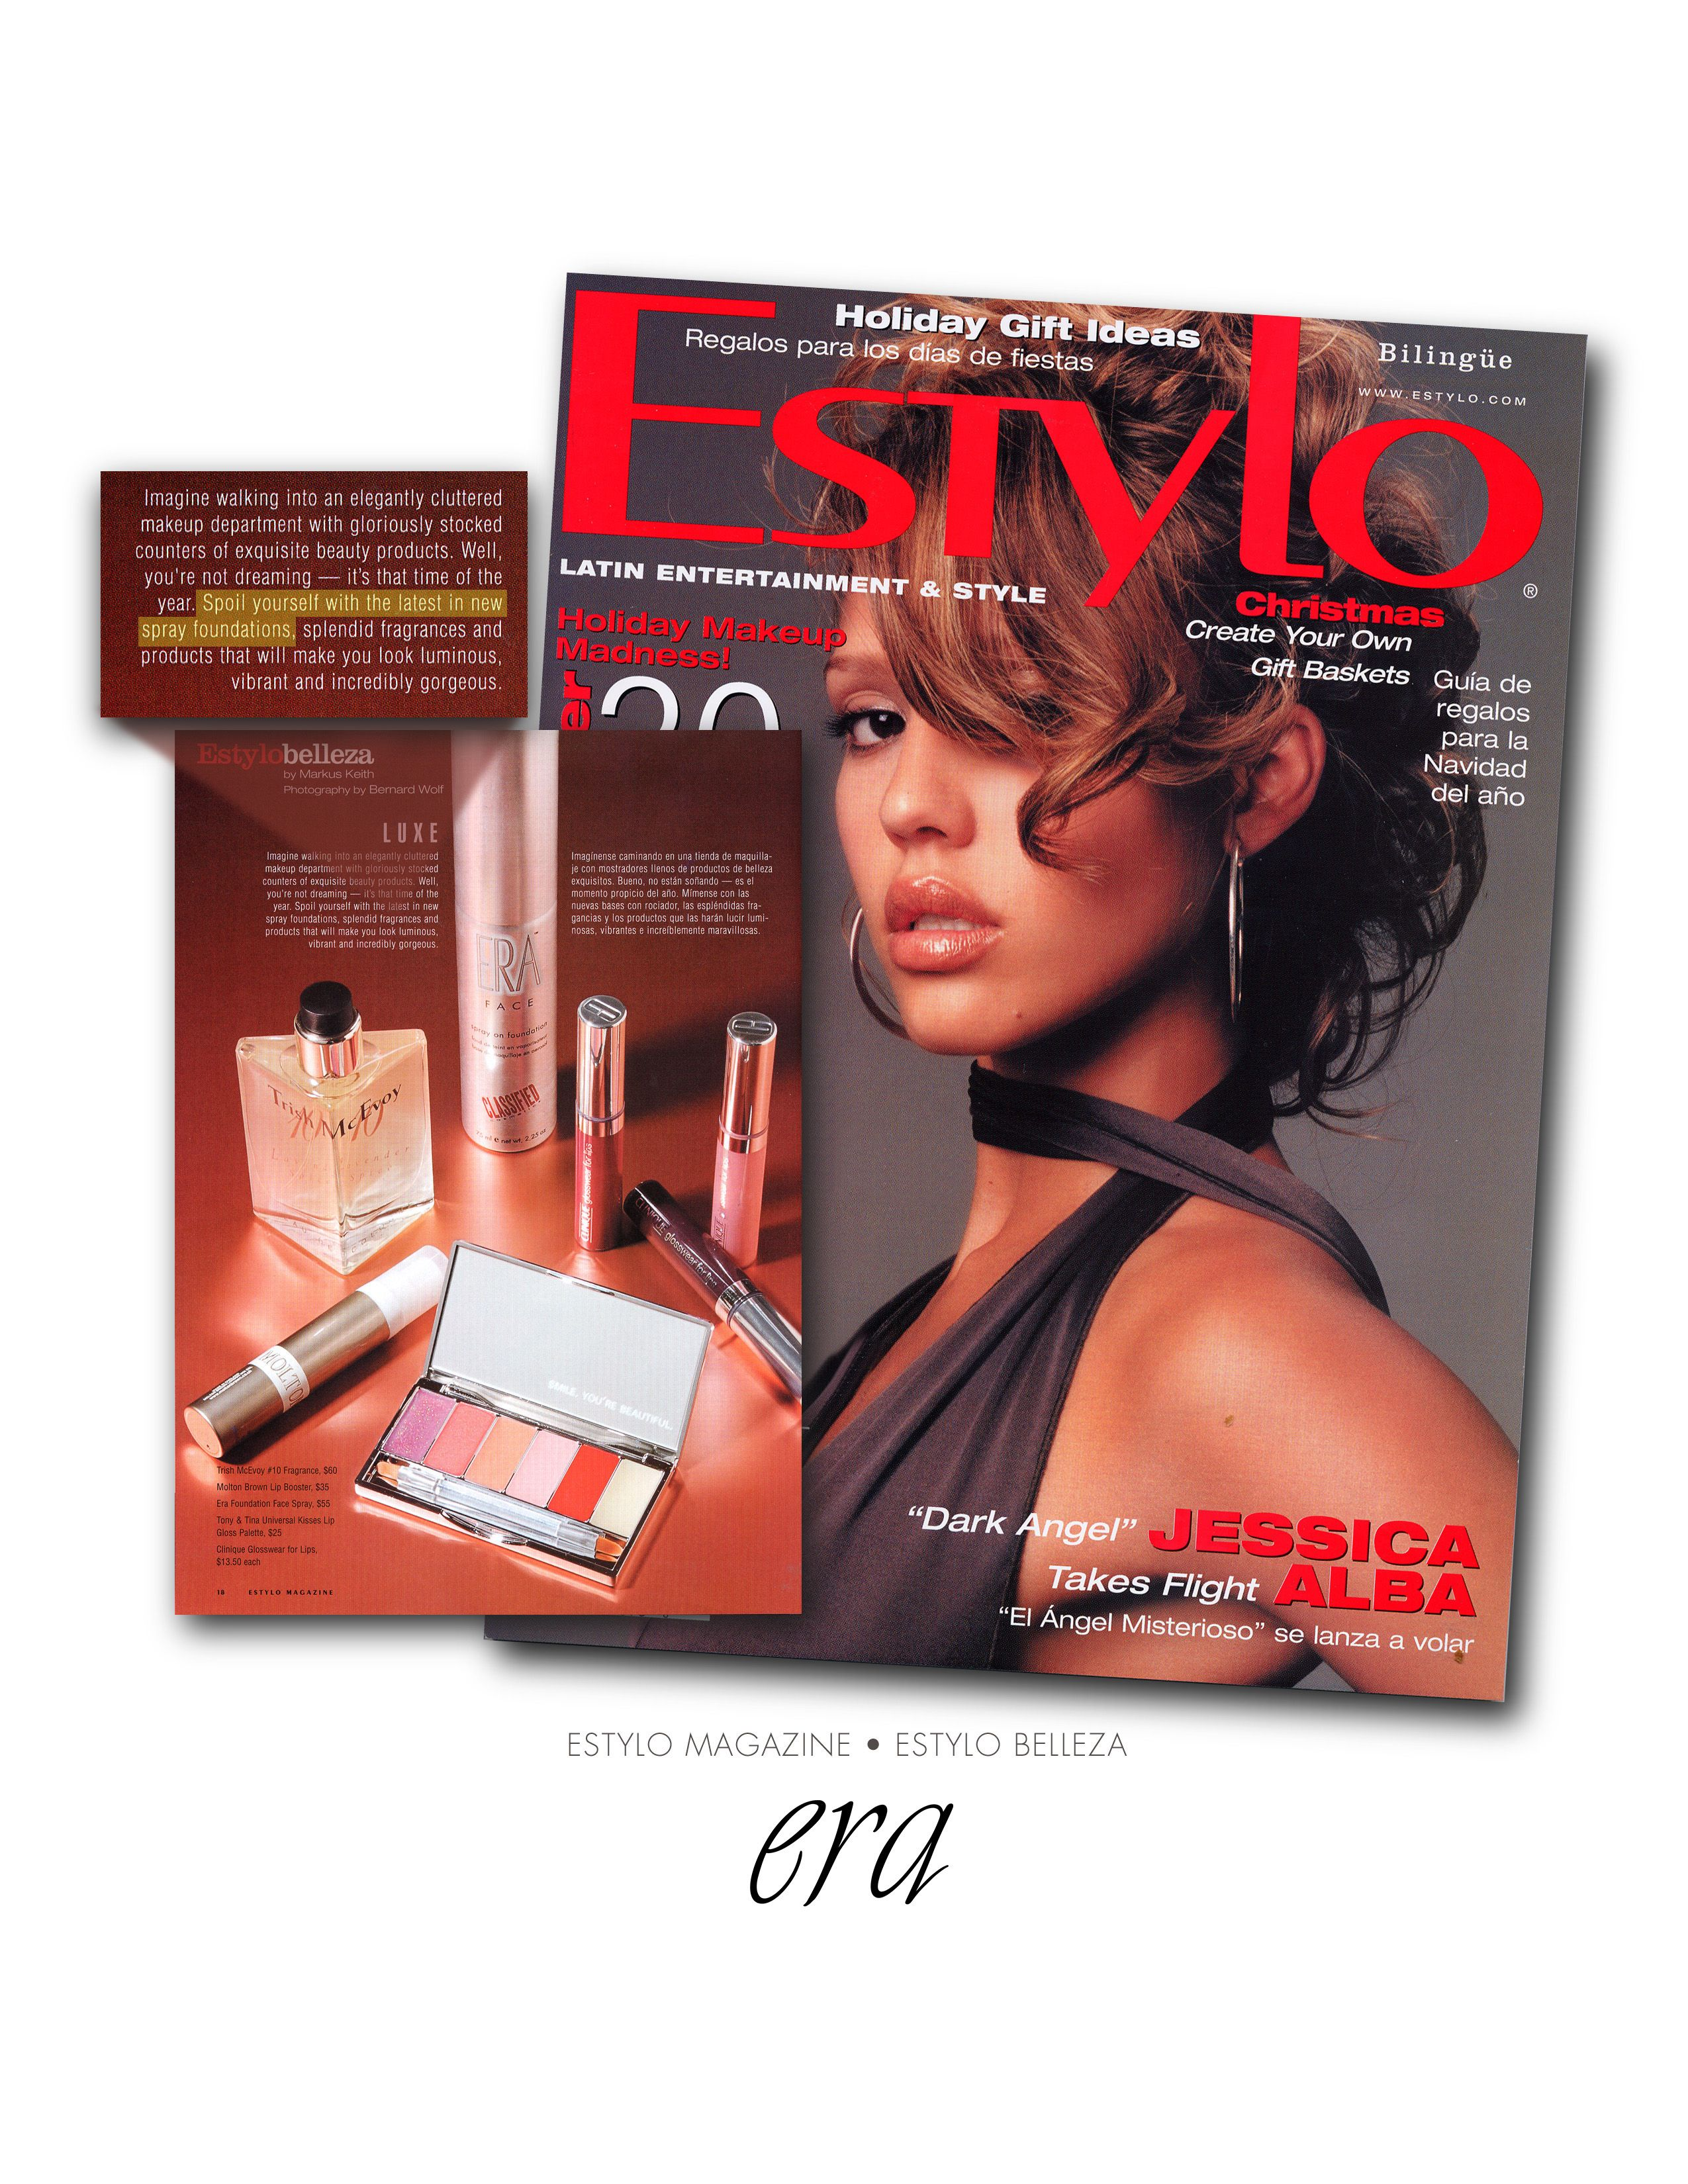 erasprayonmakeup GLOBAL EDITORAL PRESS IN MAGAZINES